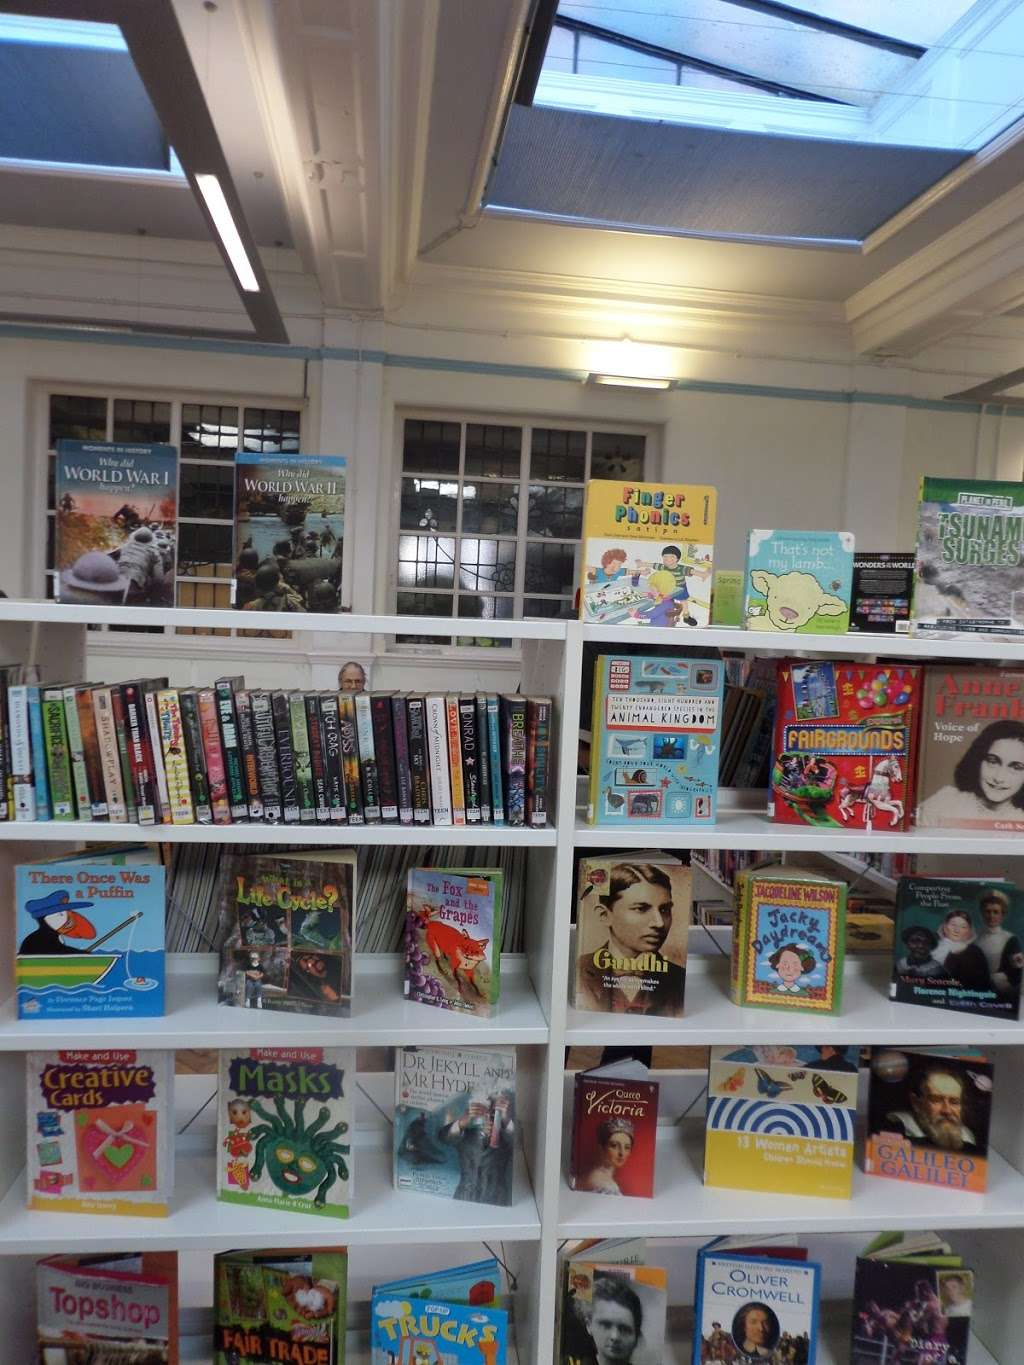 Carnegie Library - library  | Photo 7 of 10 | Address: 188 Herne Hill Rd, Herne Hill, London SE24 0AG, UK | Phone: 020 7926 0750